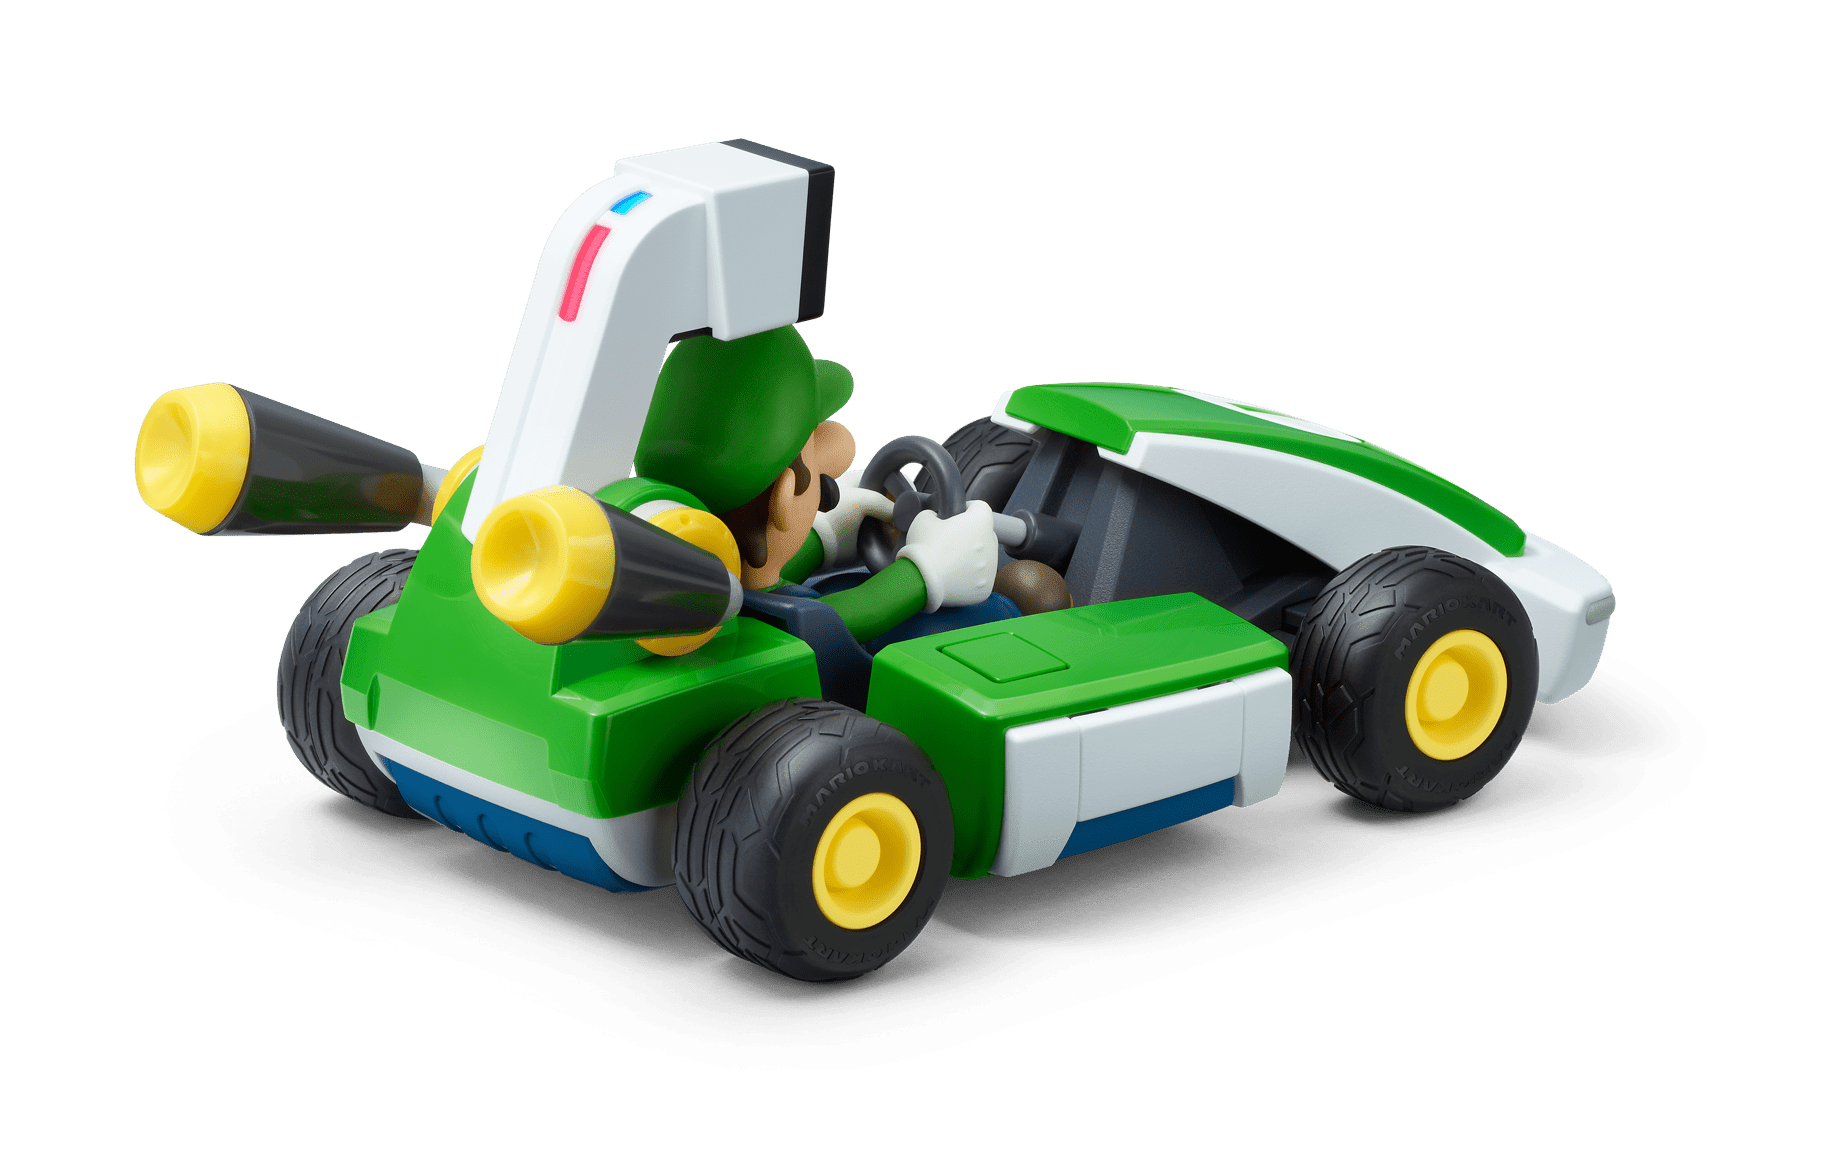 Nintendo S Latest Trick Is Turning The Switch Into An Rc Controller For An Ar Mario Kart Game Techcrunch